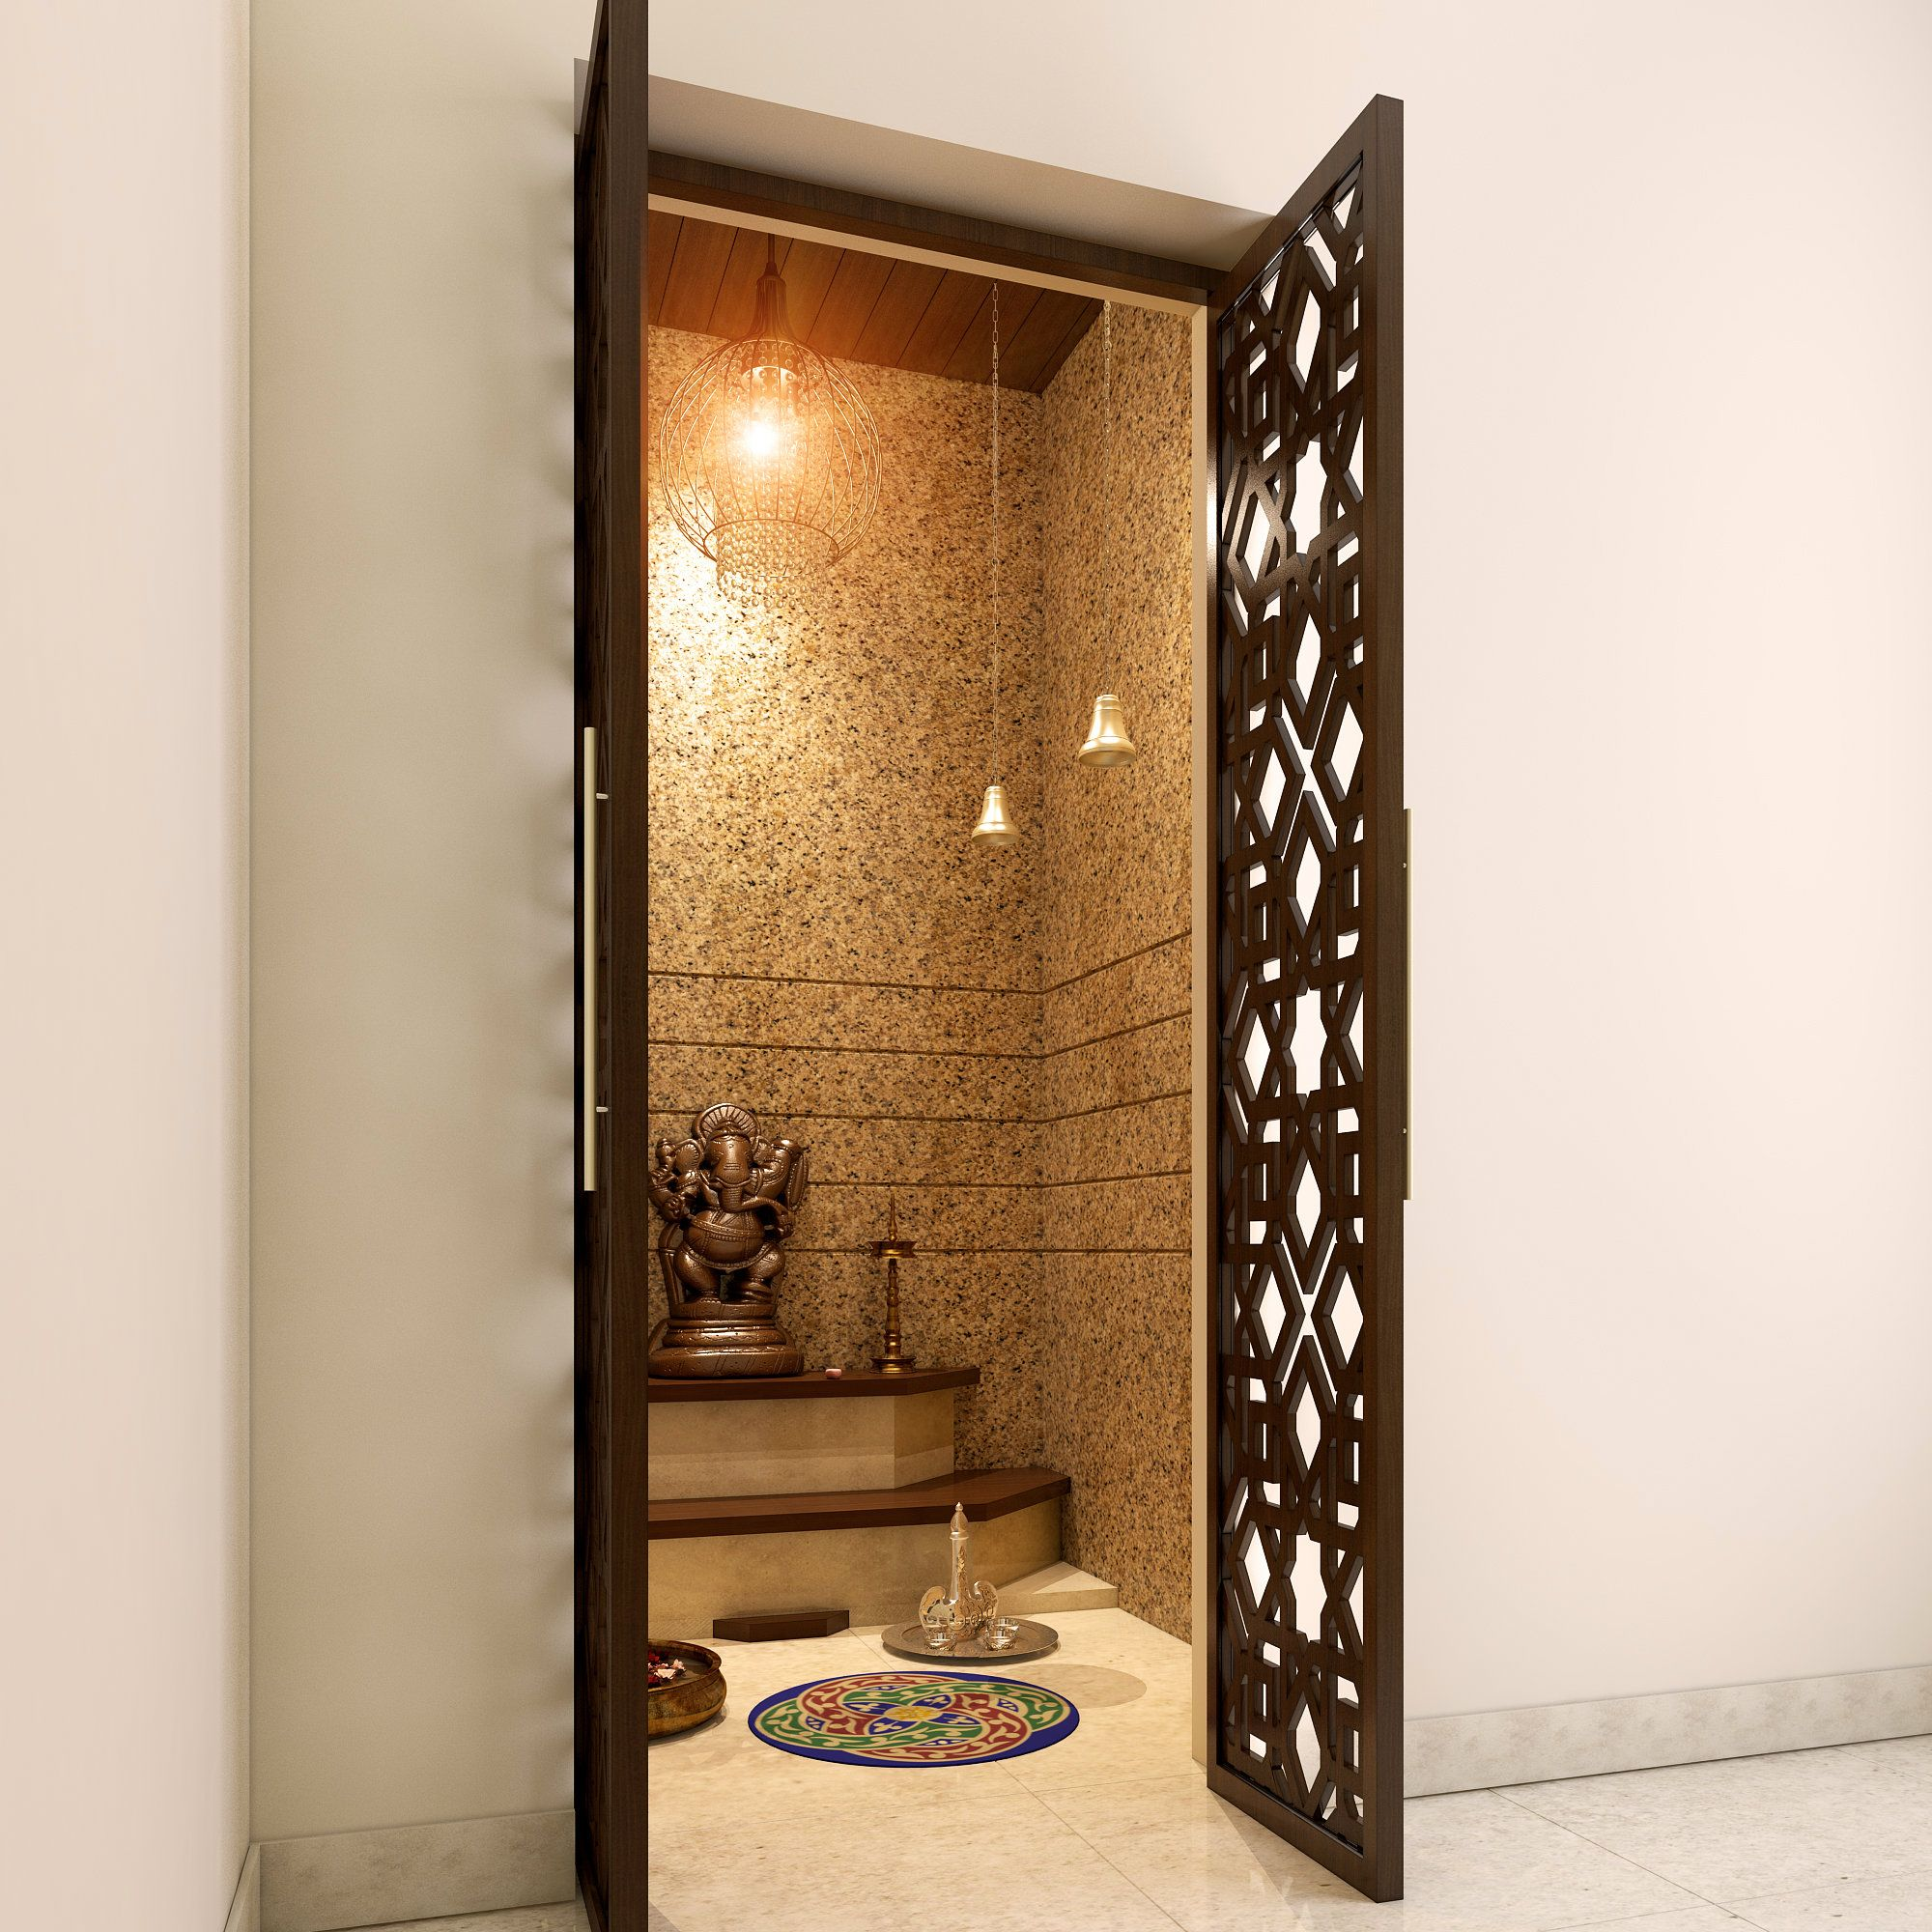 Lattice doors that make your pooja room look more